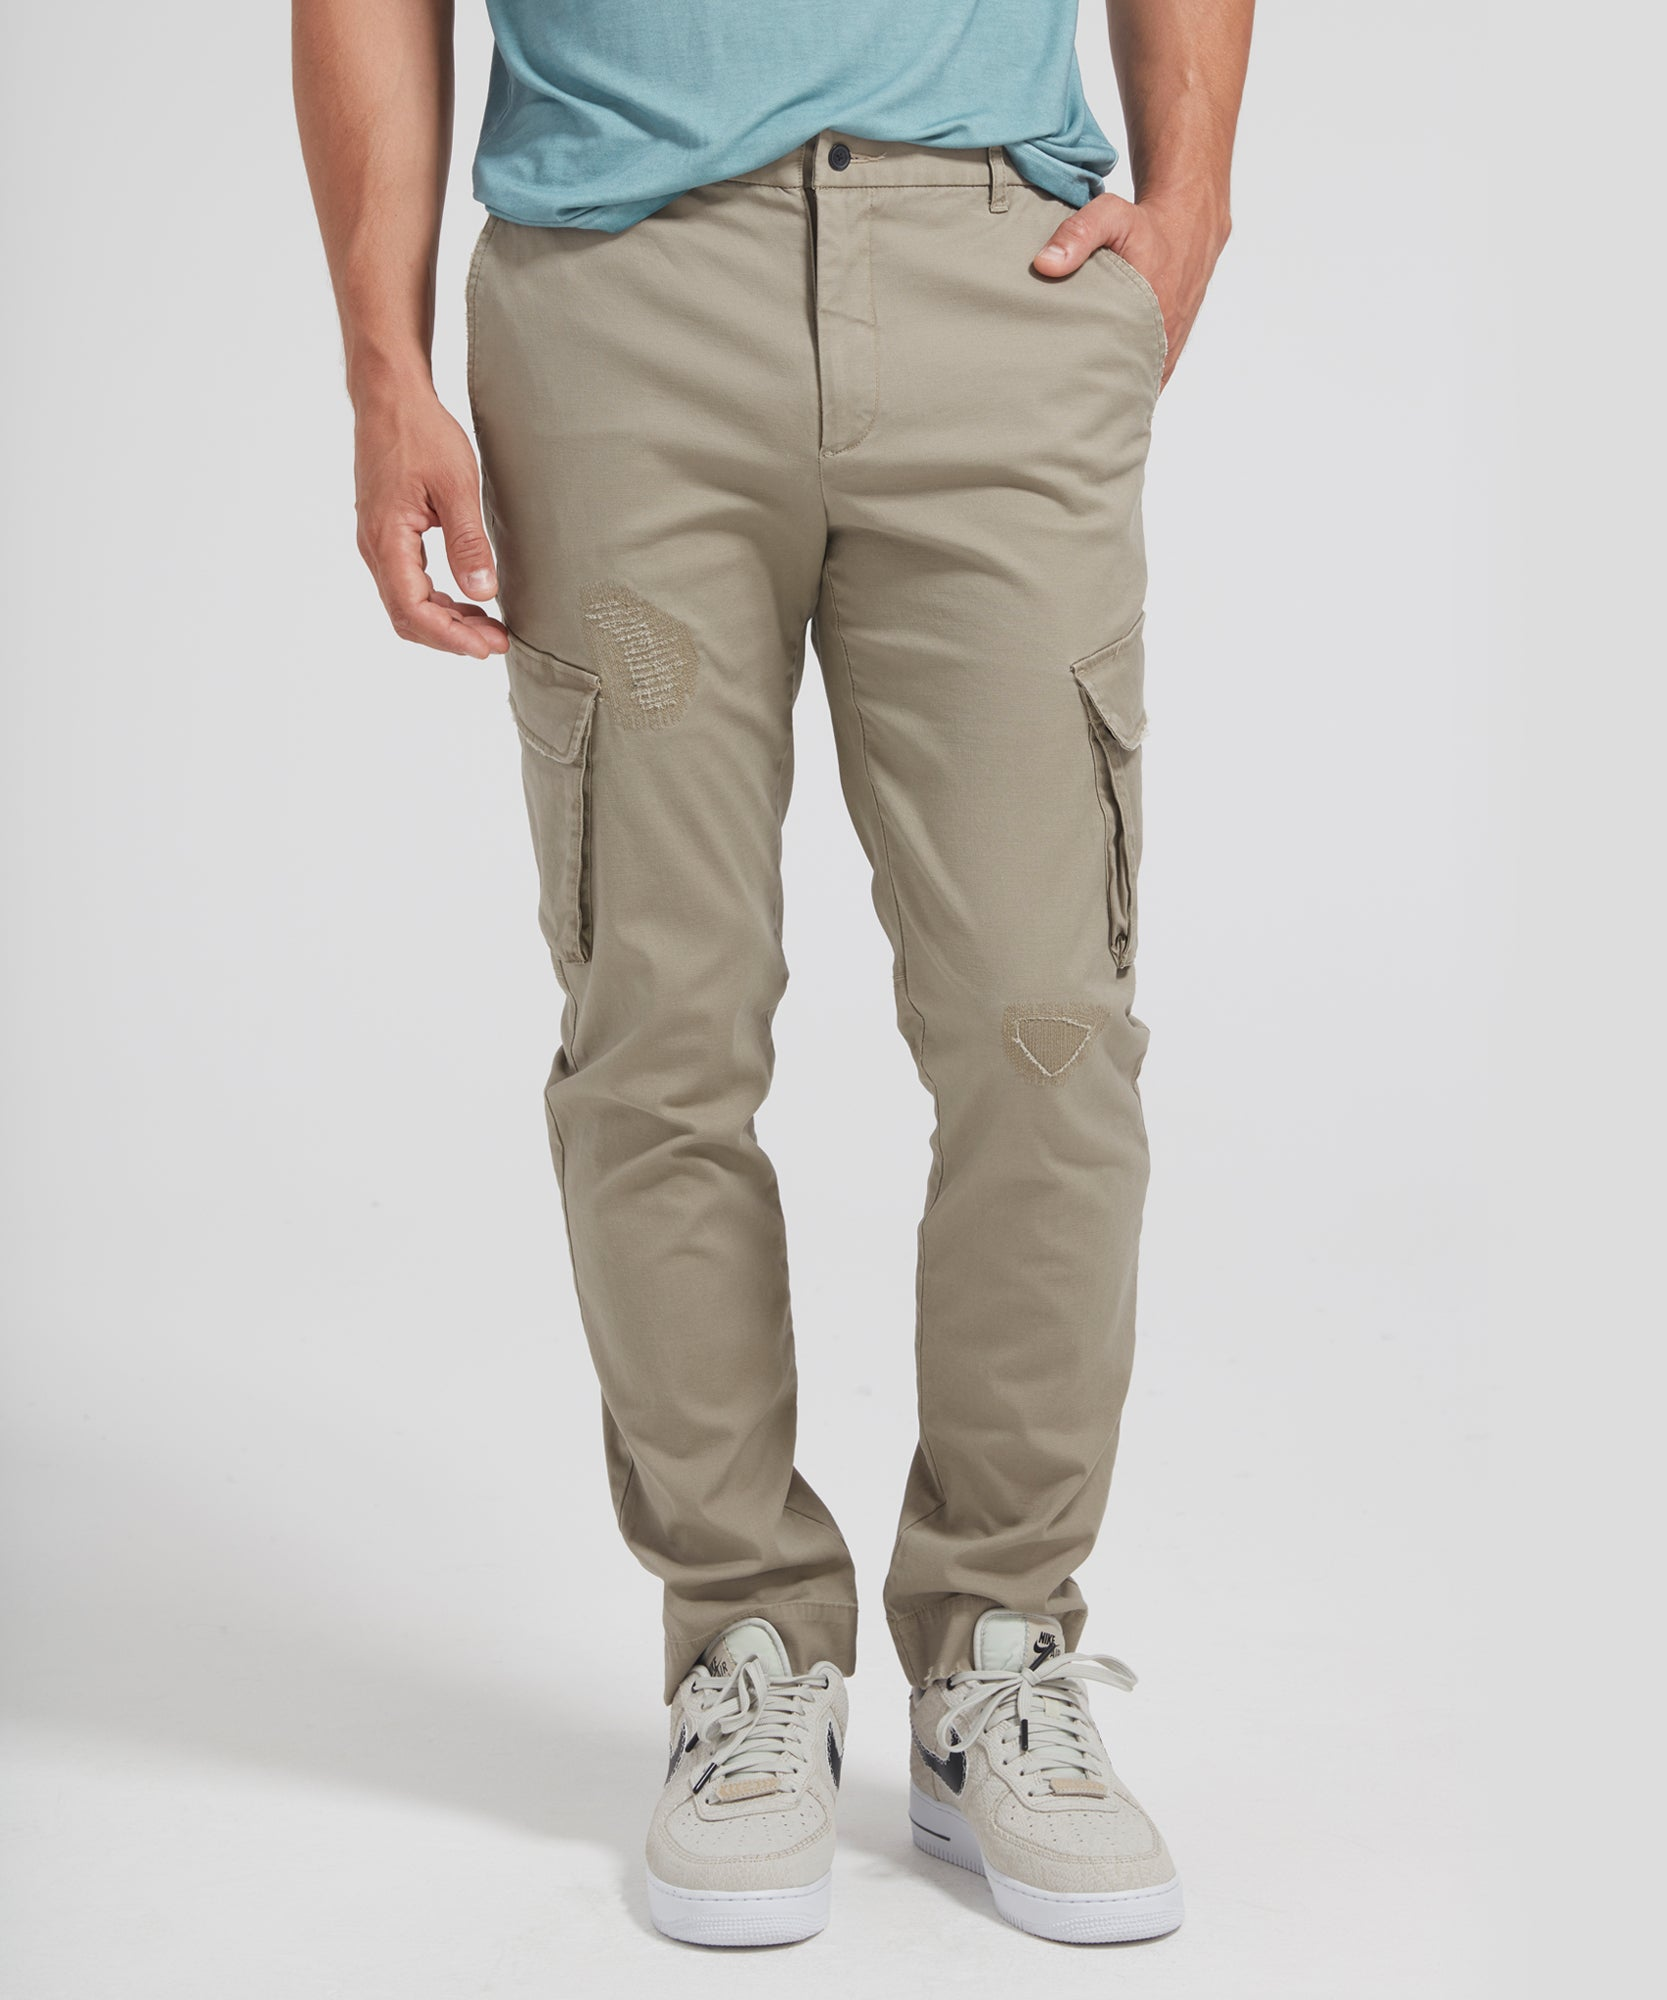 Stretch Cotton Distressed Cargo Pants